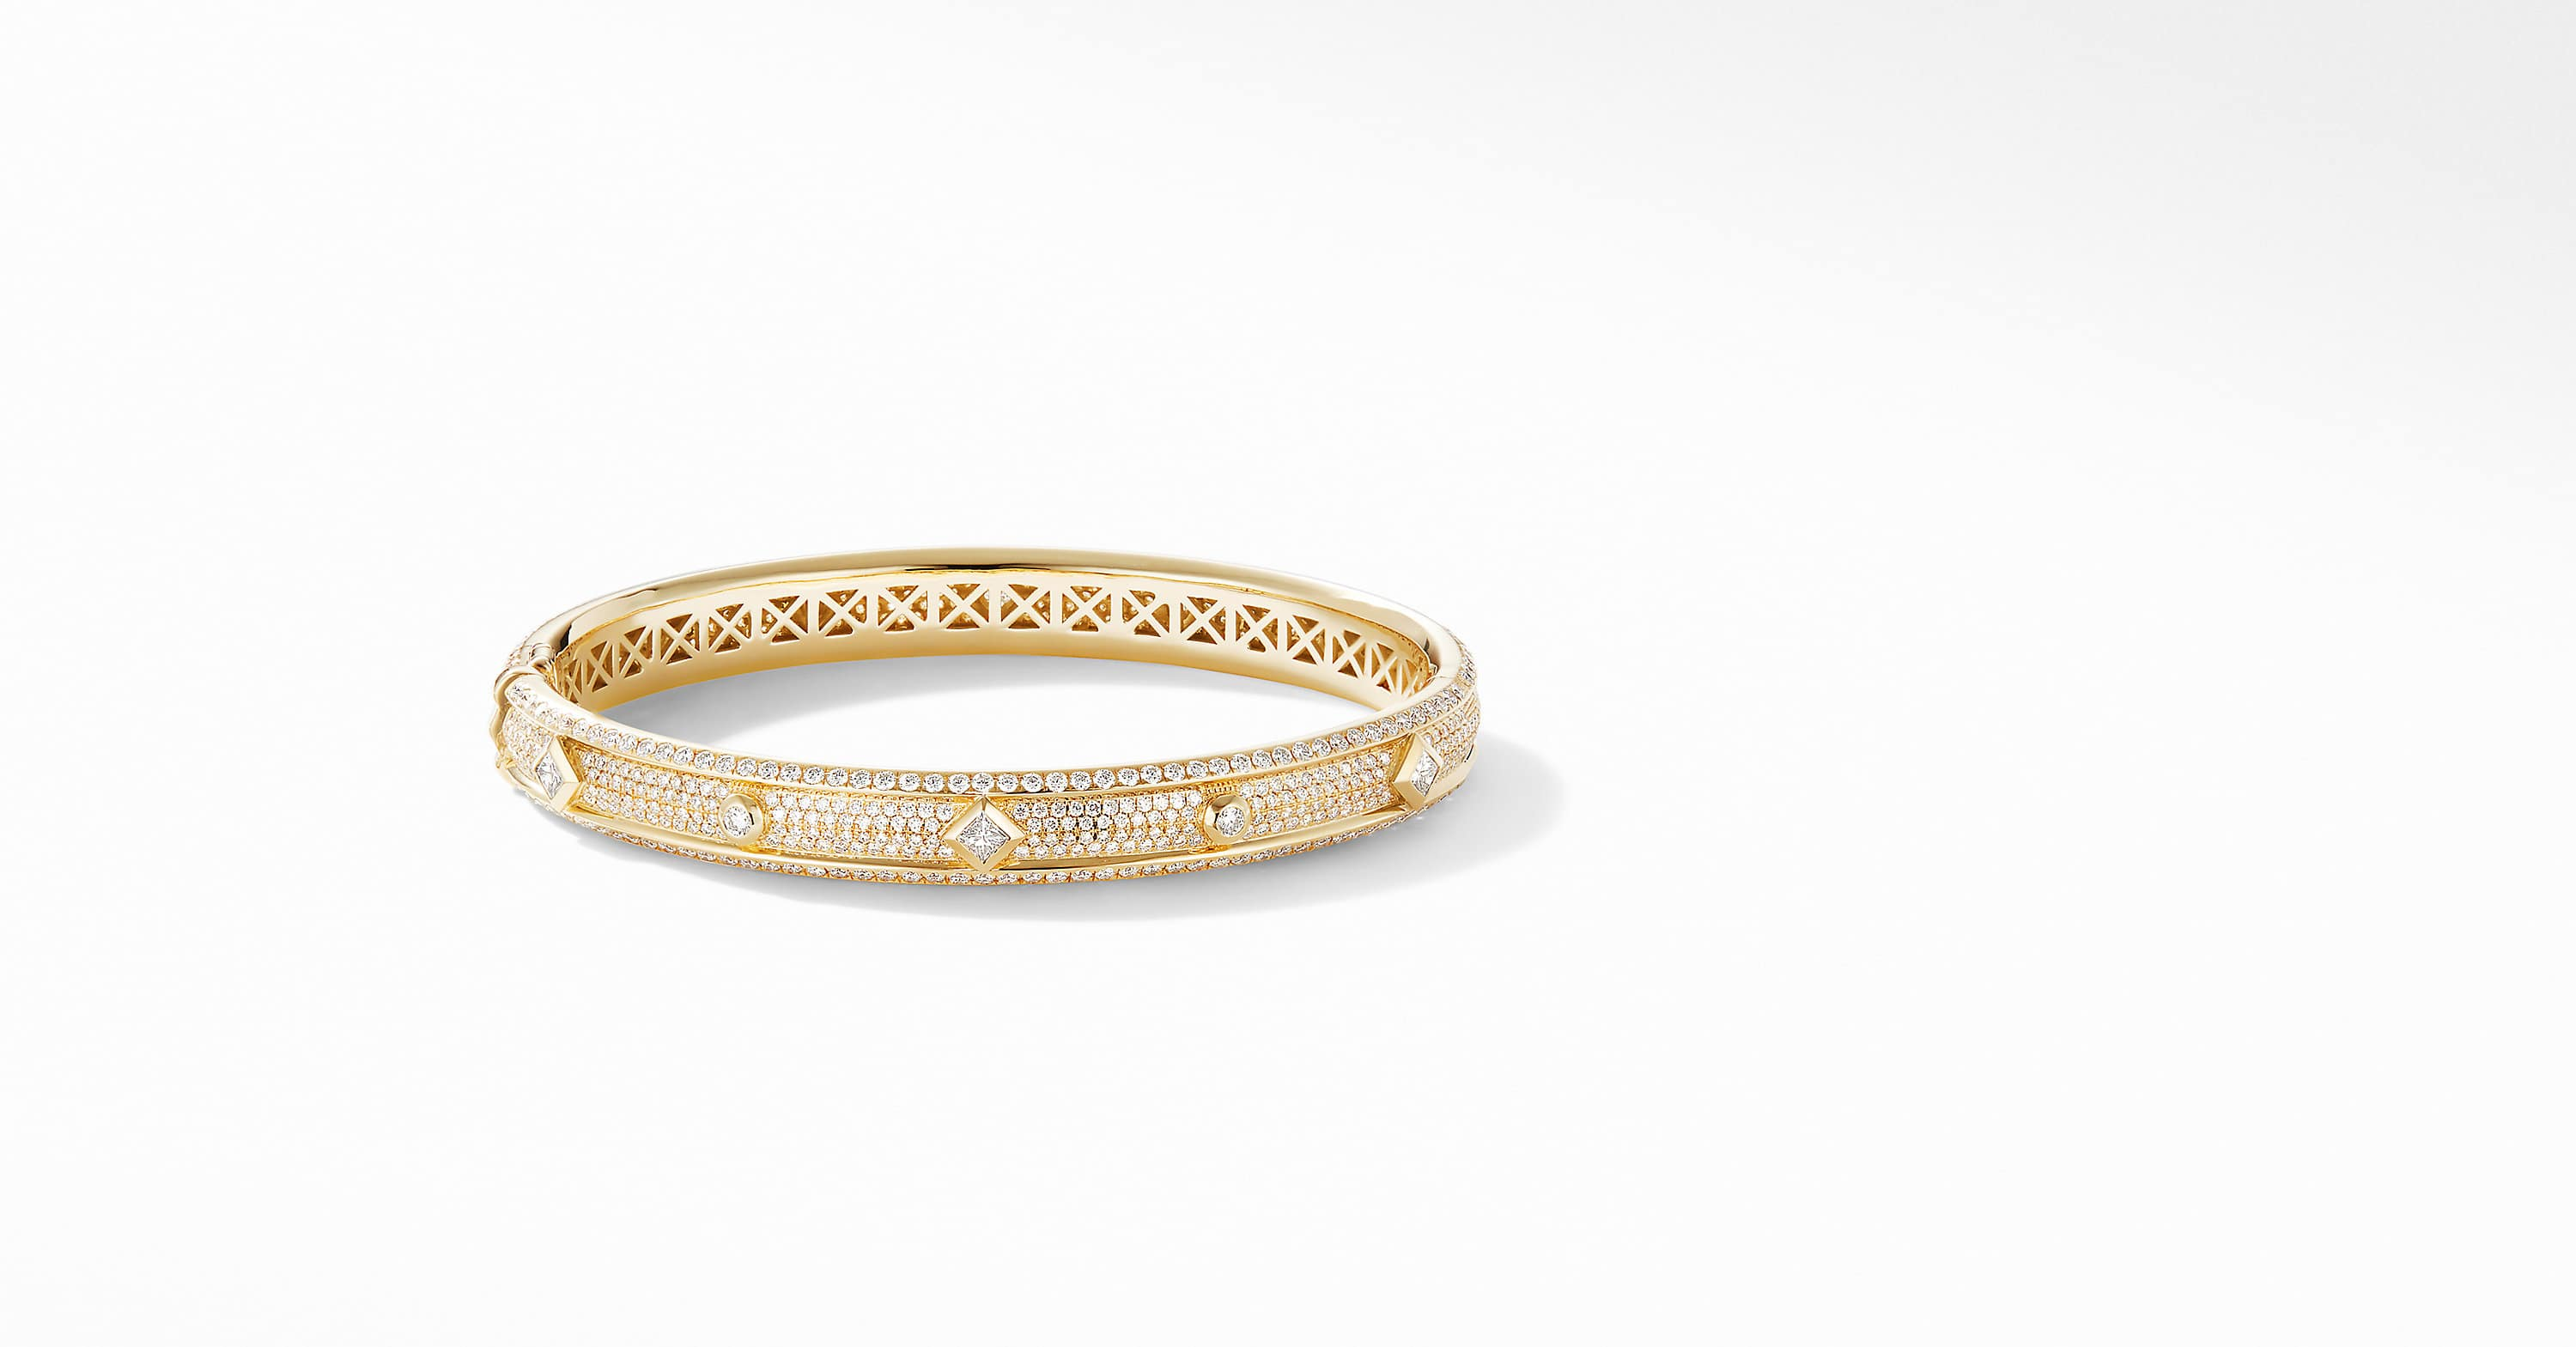 Modern Renaissance Narrow Bracelet in 18K Yellow Gold with Pavé